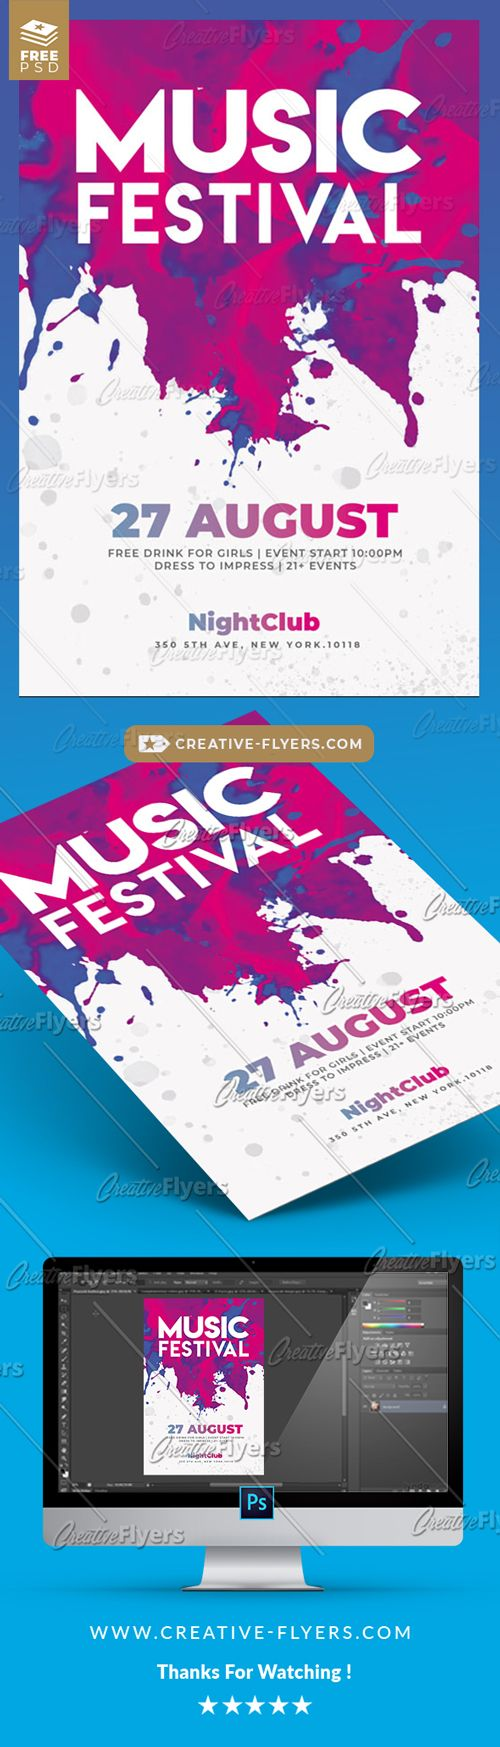 Music Festival Free Flyers Creativeflyers Flyer Templates